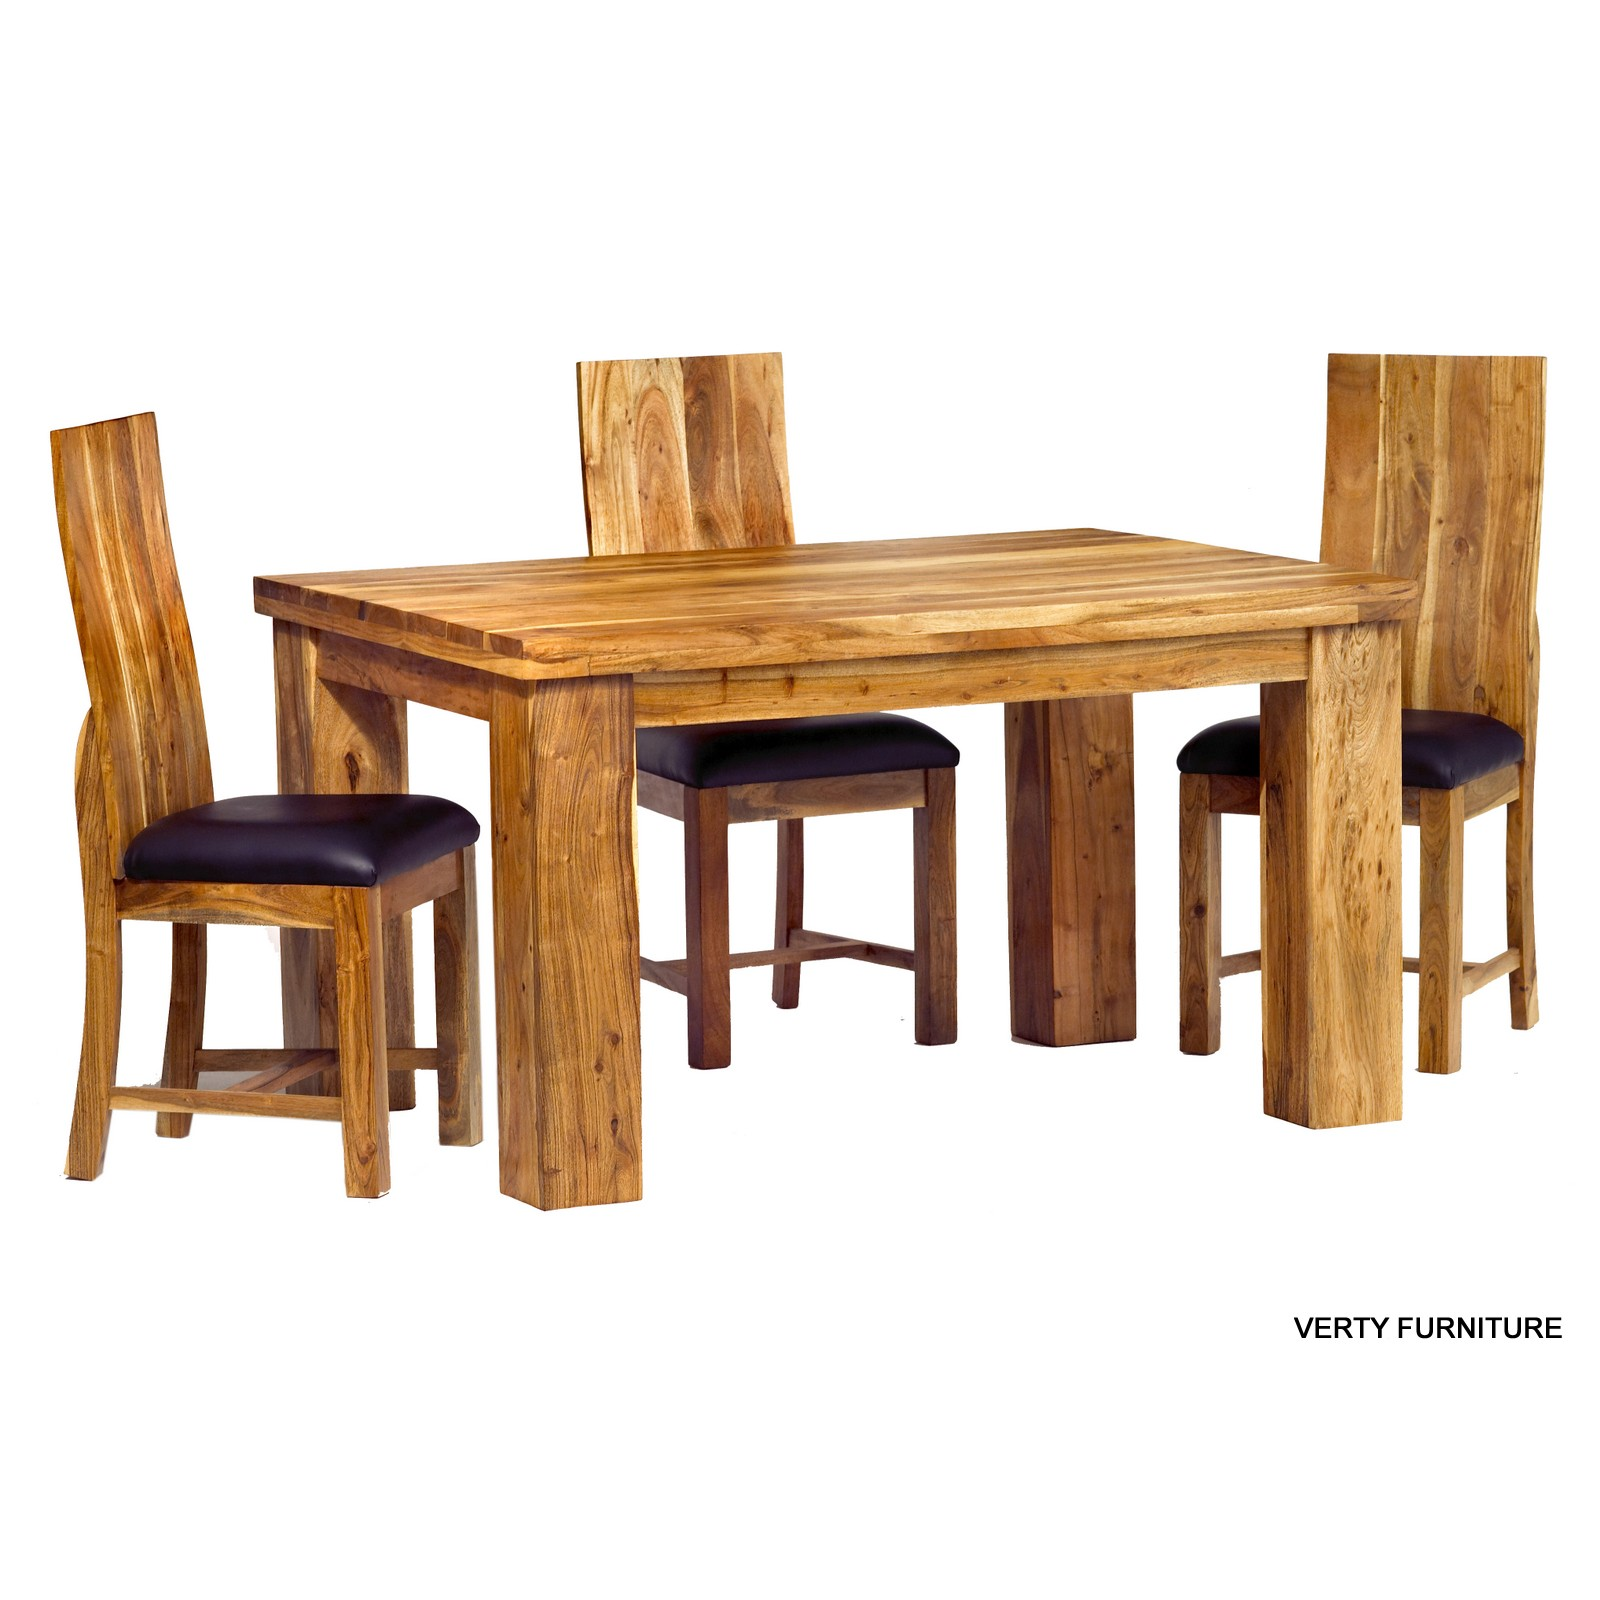 Acacia dining table small with 4 chairs verty indian for Small wood dining table and chairs